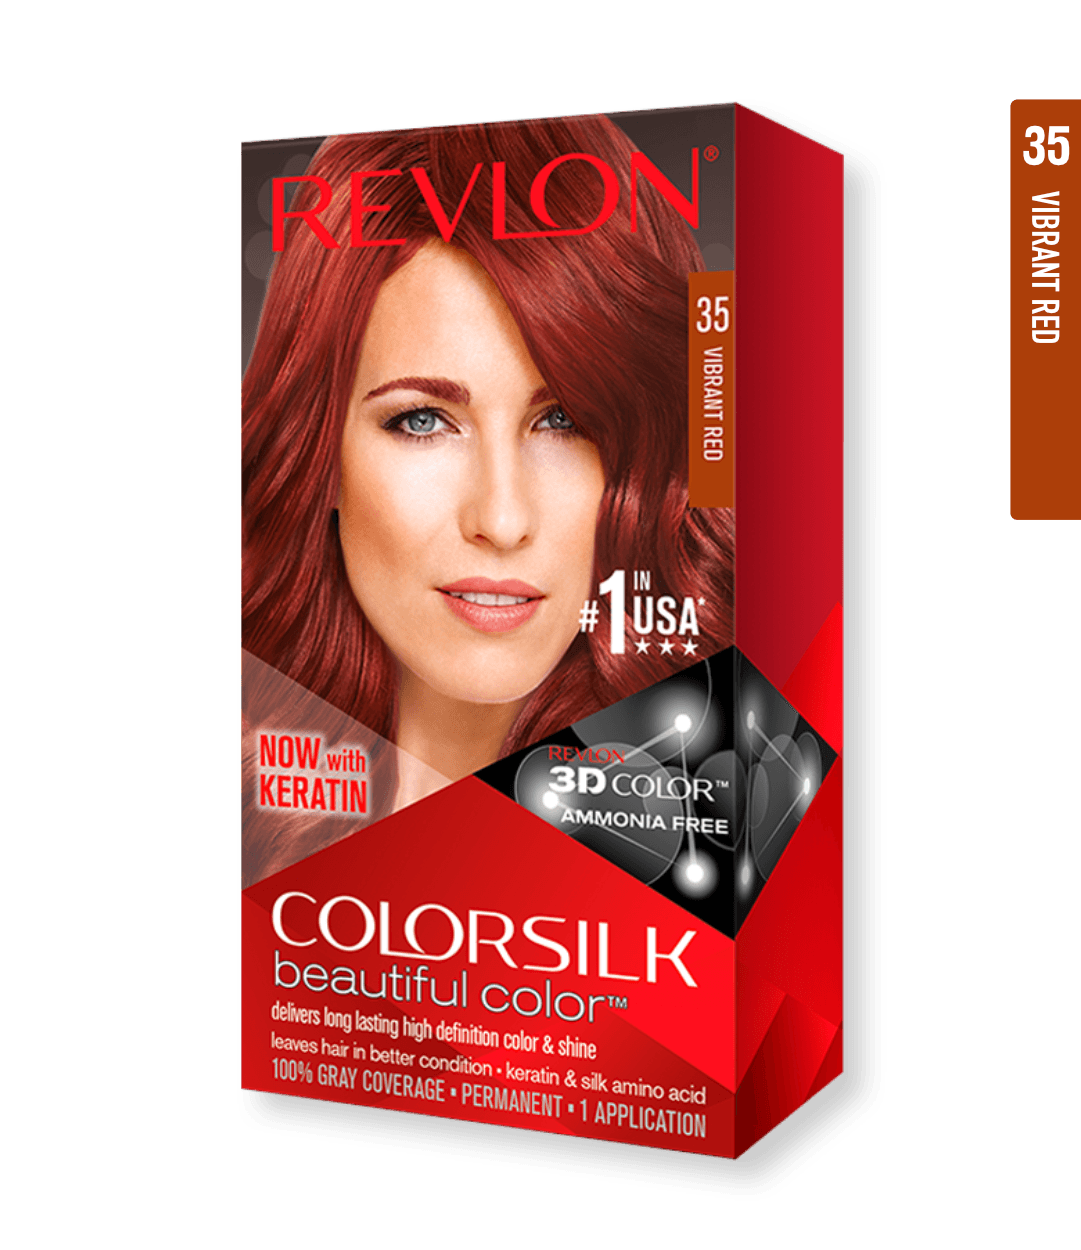 Revlon ColorSilk 35 Vibrant Red | Duo Cosmetics